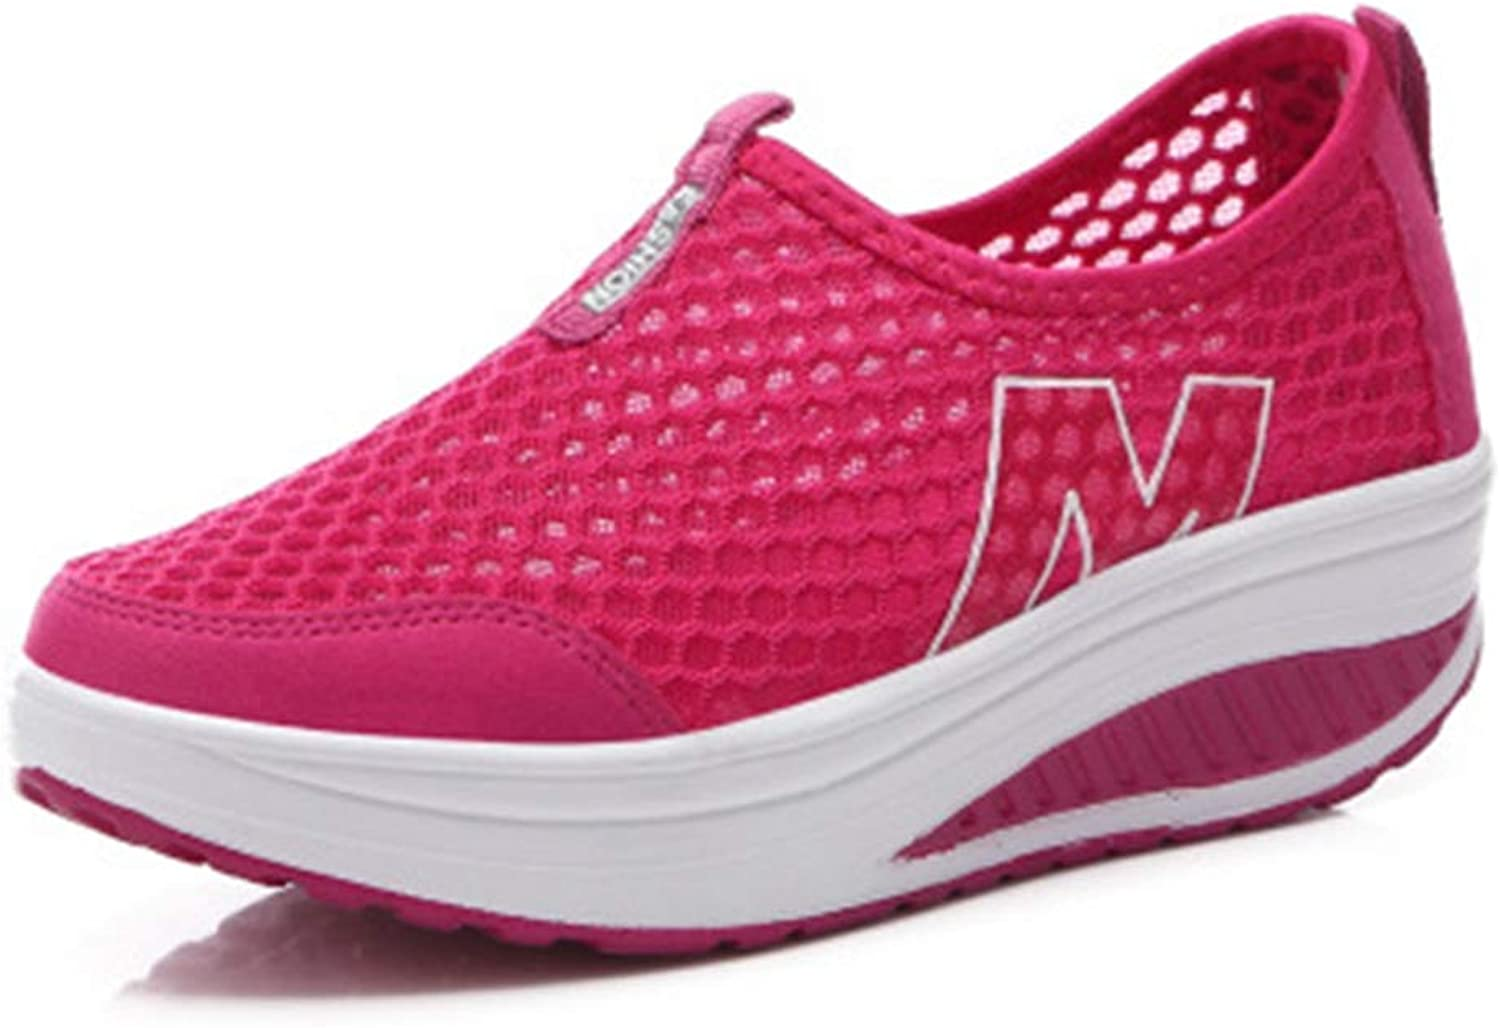 ASO-SLING Womens Walking Sneakers Breathable Mesh Comfortable Casua Outdoor Athletics Sports shoes